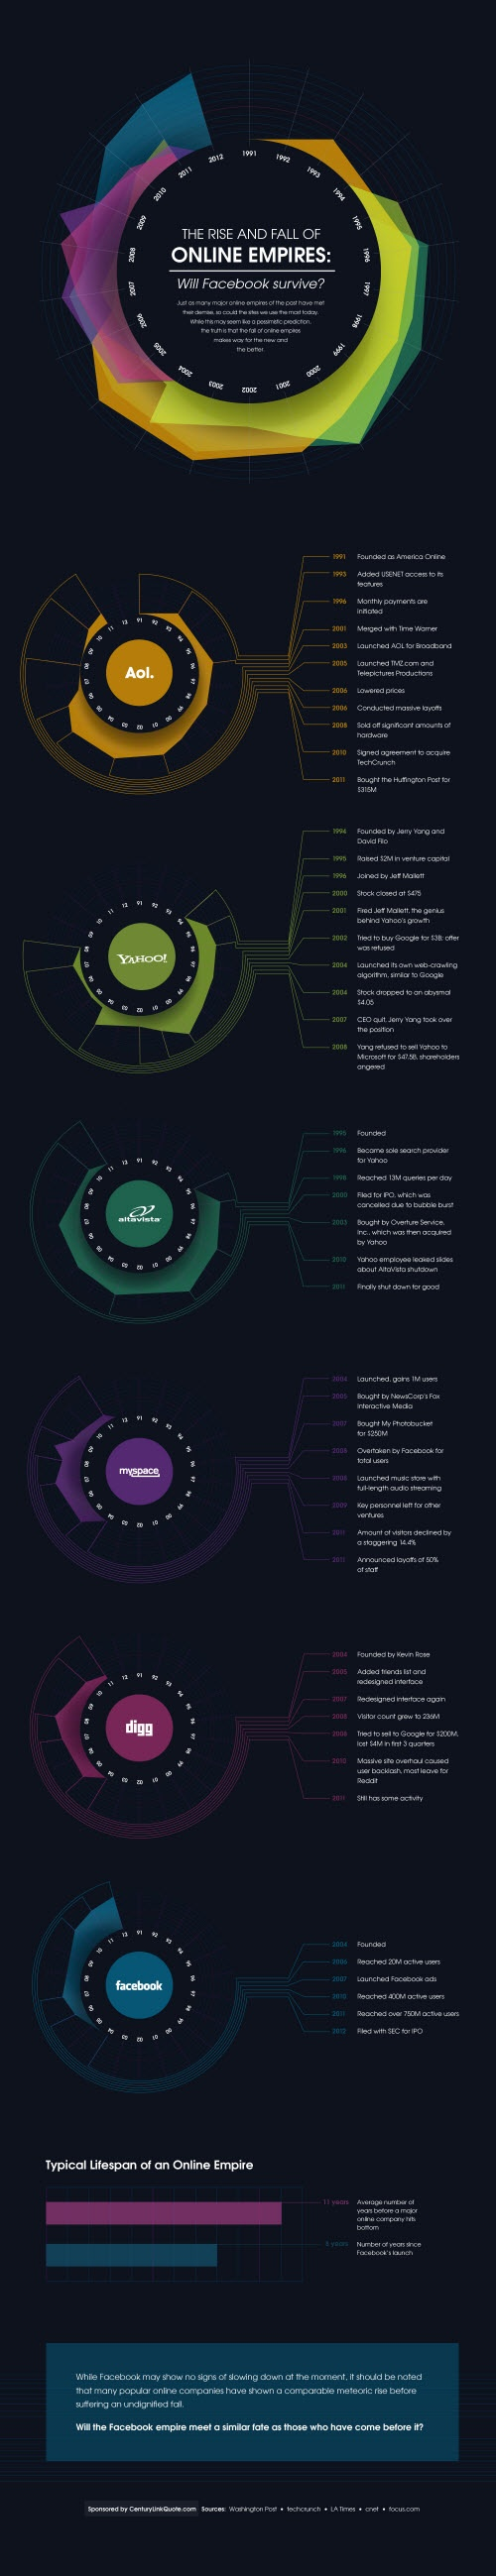 infographic about online sites